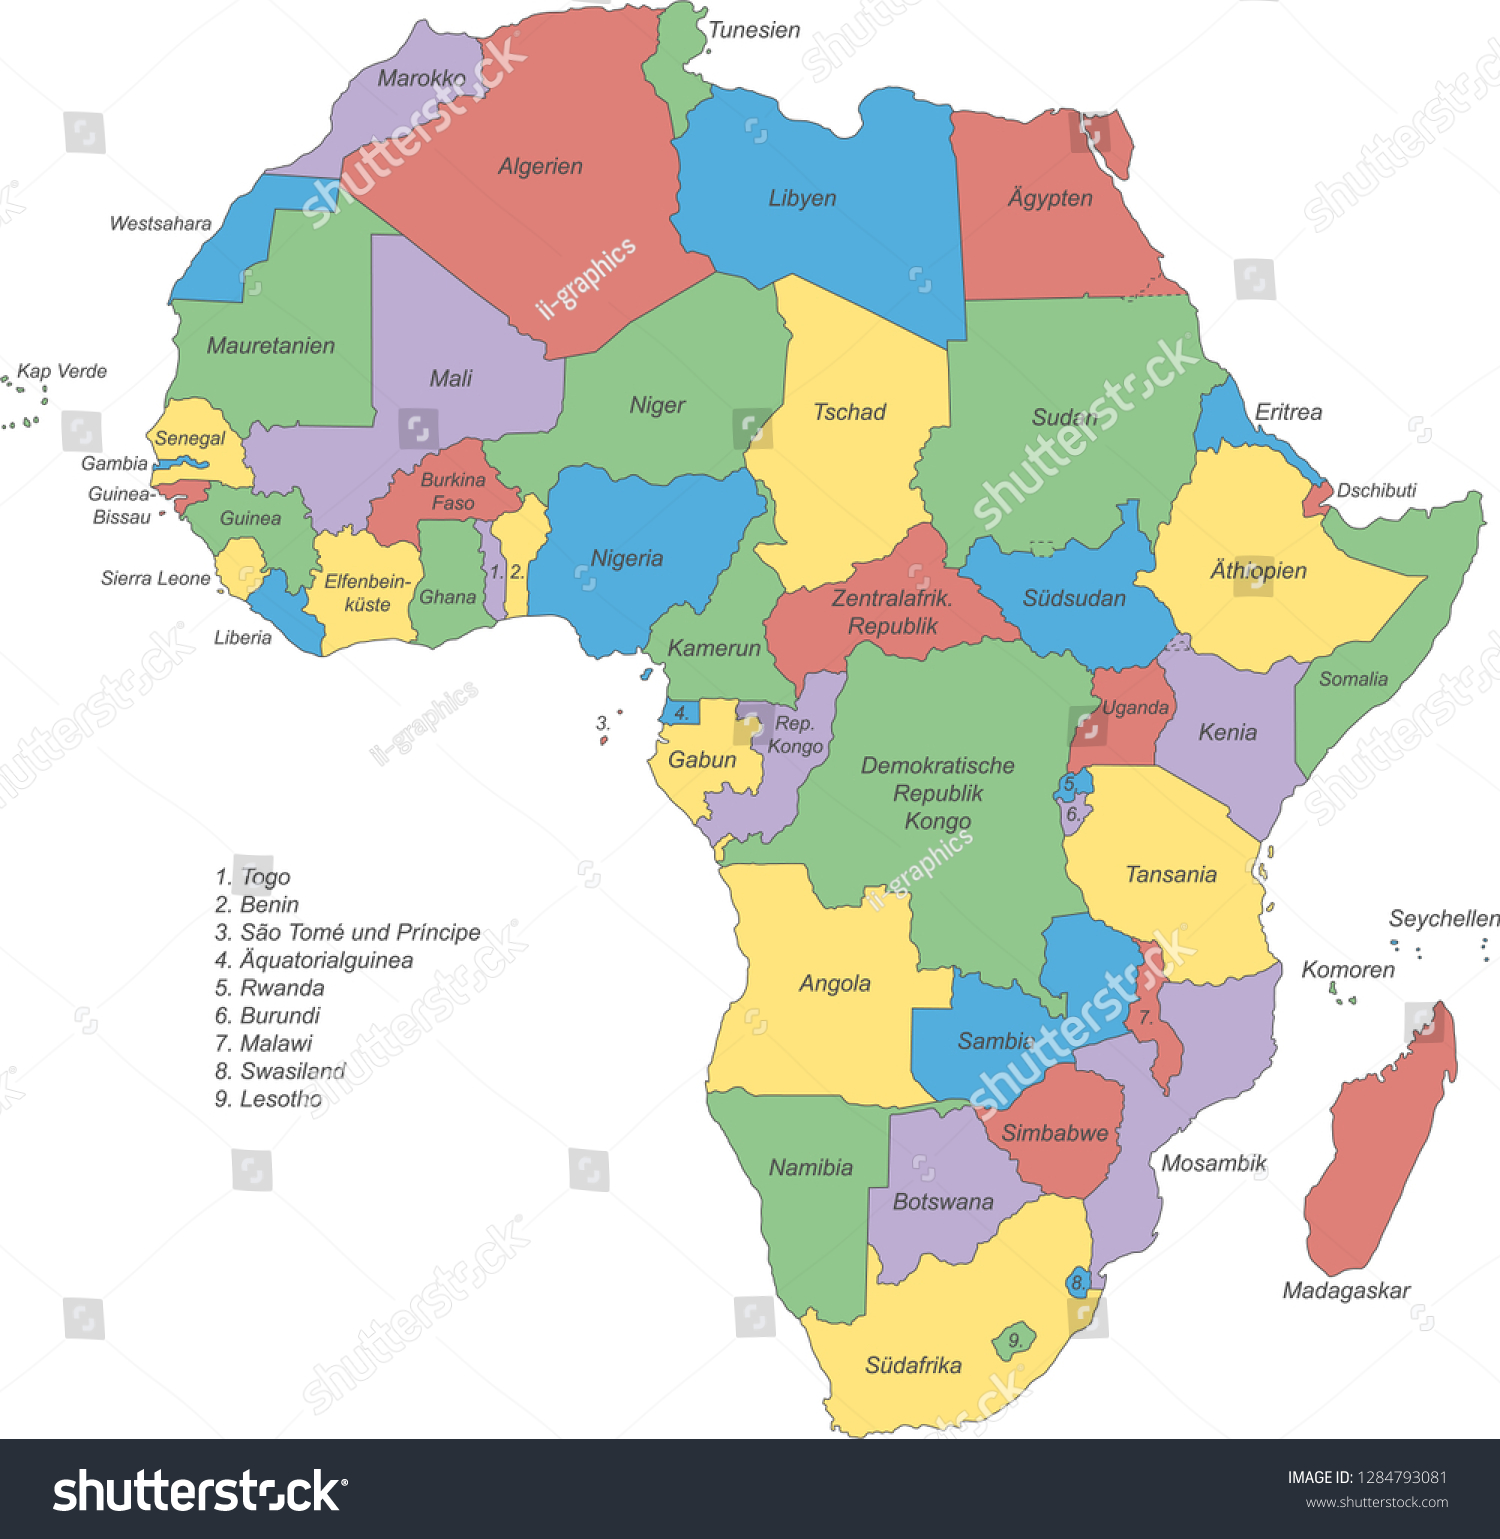 poltical map of africa Africa Political Map Africa Stock Vector Royalty Free 1284793081 poltical map of africa